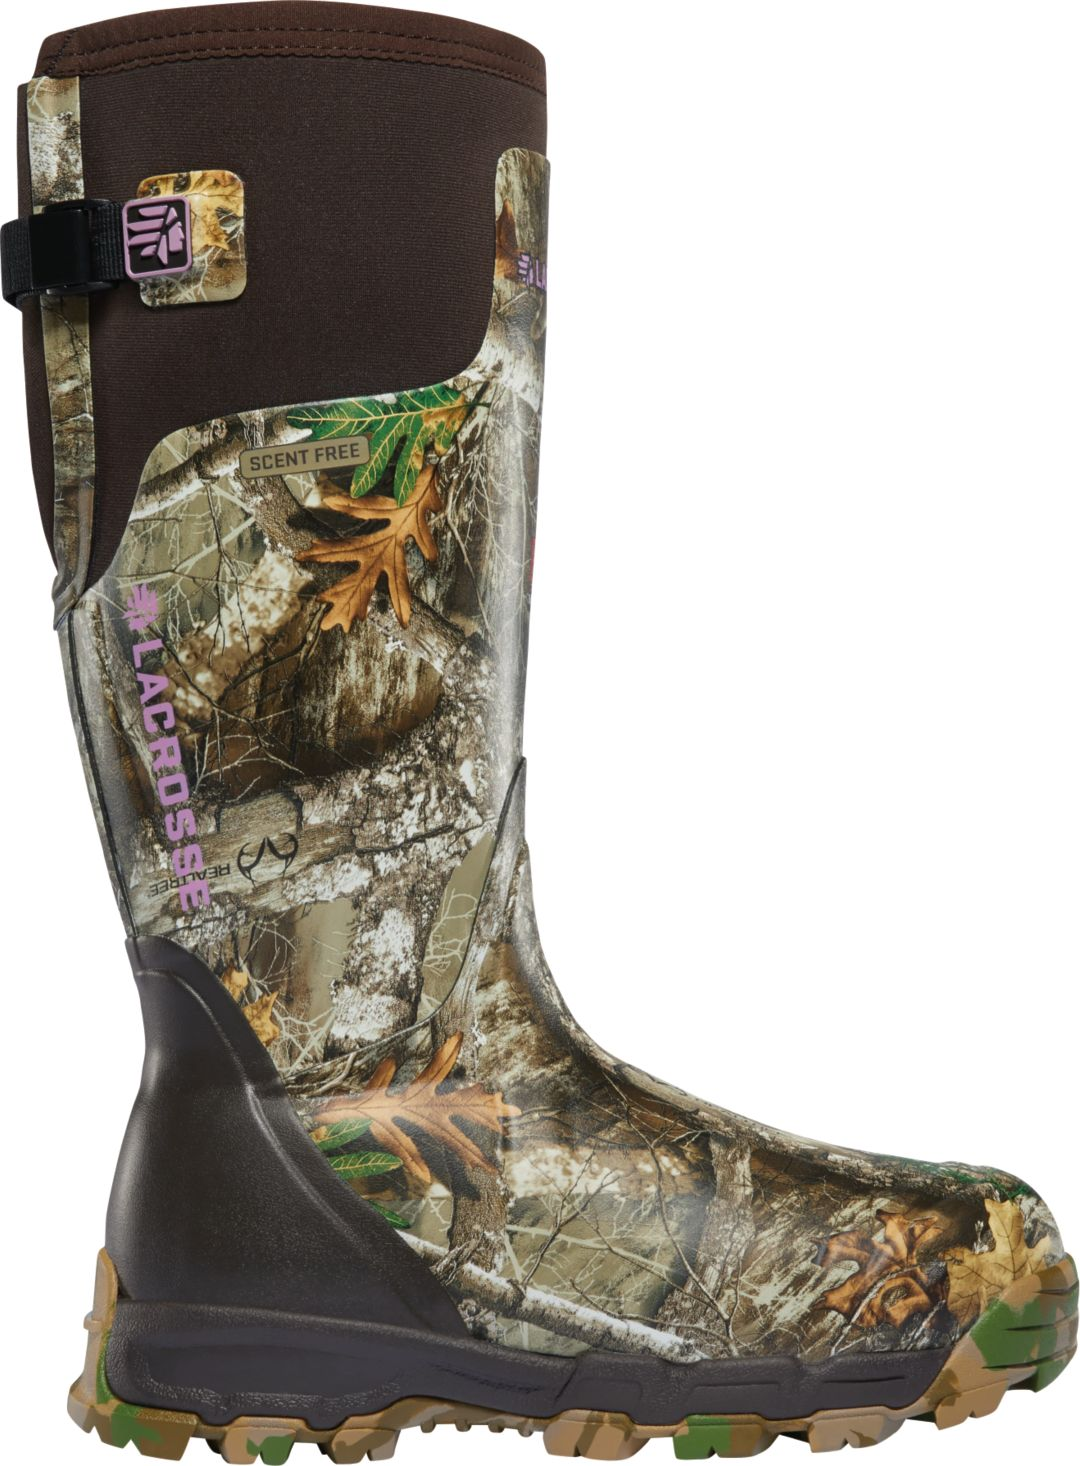 dfb8099cee7 LaCrosse Women's Alphaburly Pro 15'' Realtree Edge 800g Hunting Boots